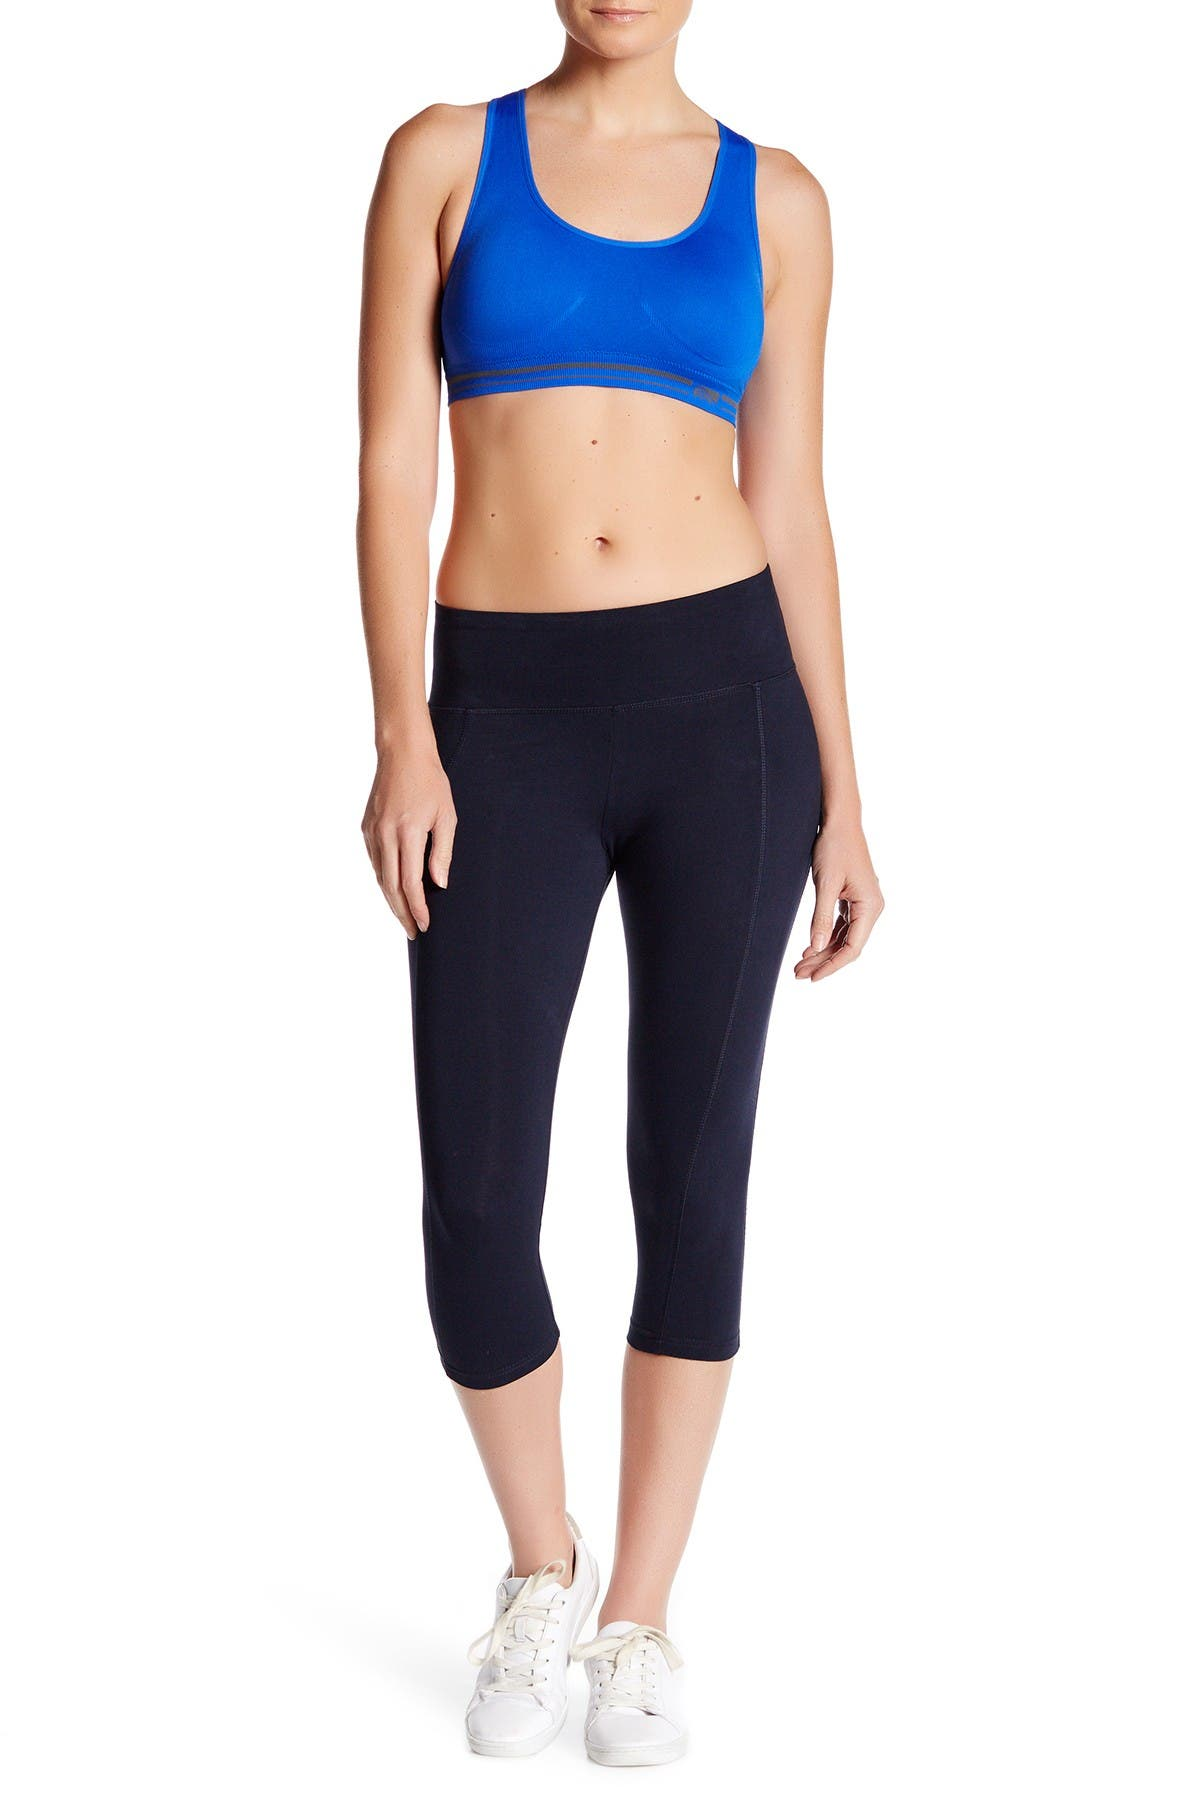 Image of Marika Essential Slimming Capri Legging